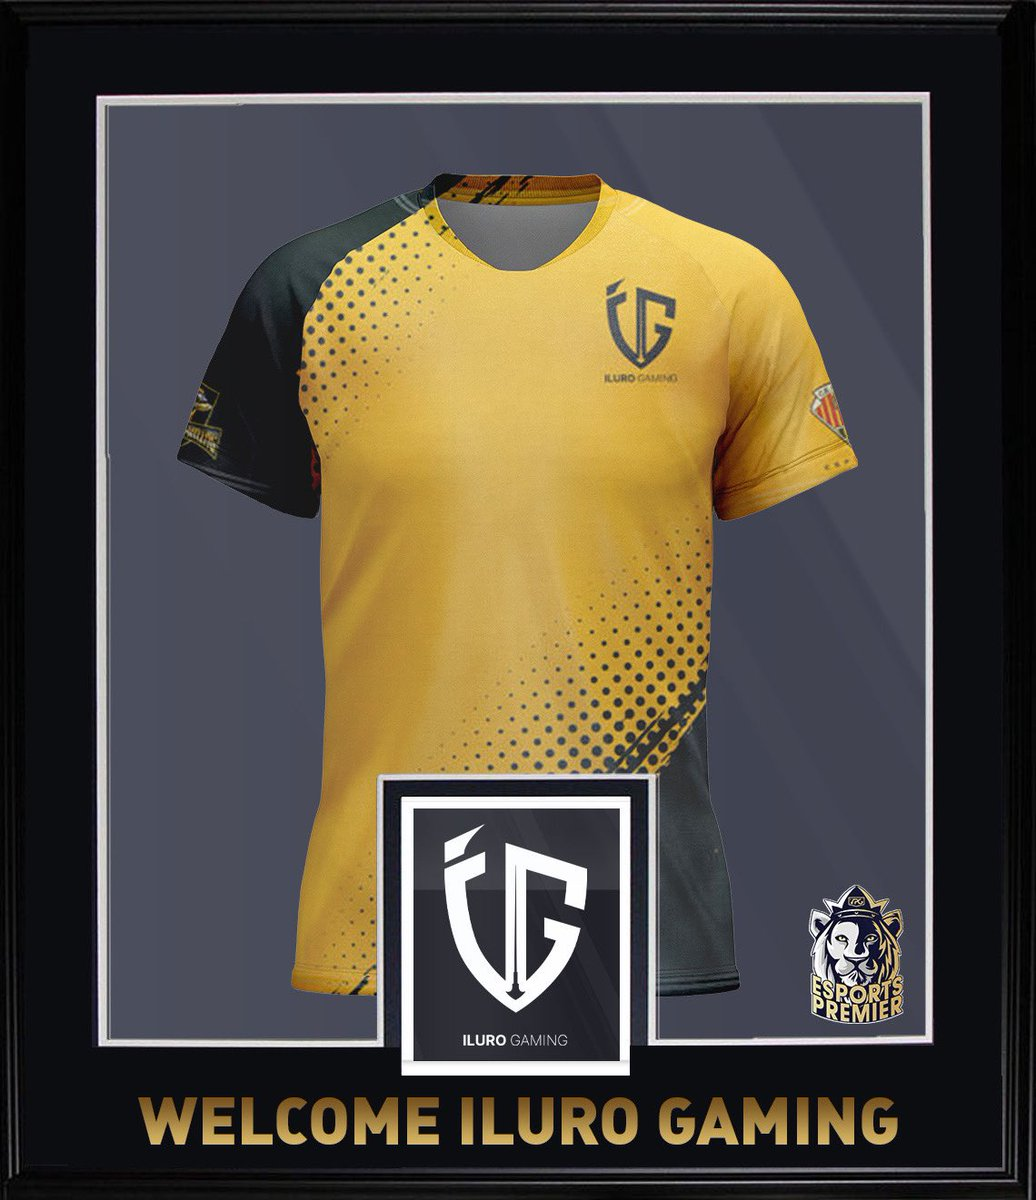 🤩 Welcome @IluroGaming into the @VPGPremier !   🌍 Nationality: 🇪🇸   🏆 A Team to watch out for in the Esports Premier, cTato is ready to make an entrance! Remember the name #Iluro   #FIFA21 #ProClubs #VPG https://t.co/aprPWAkyqu